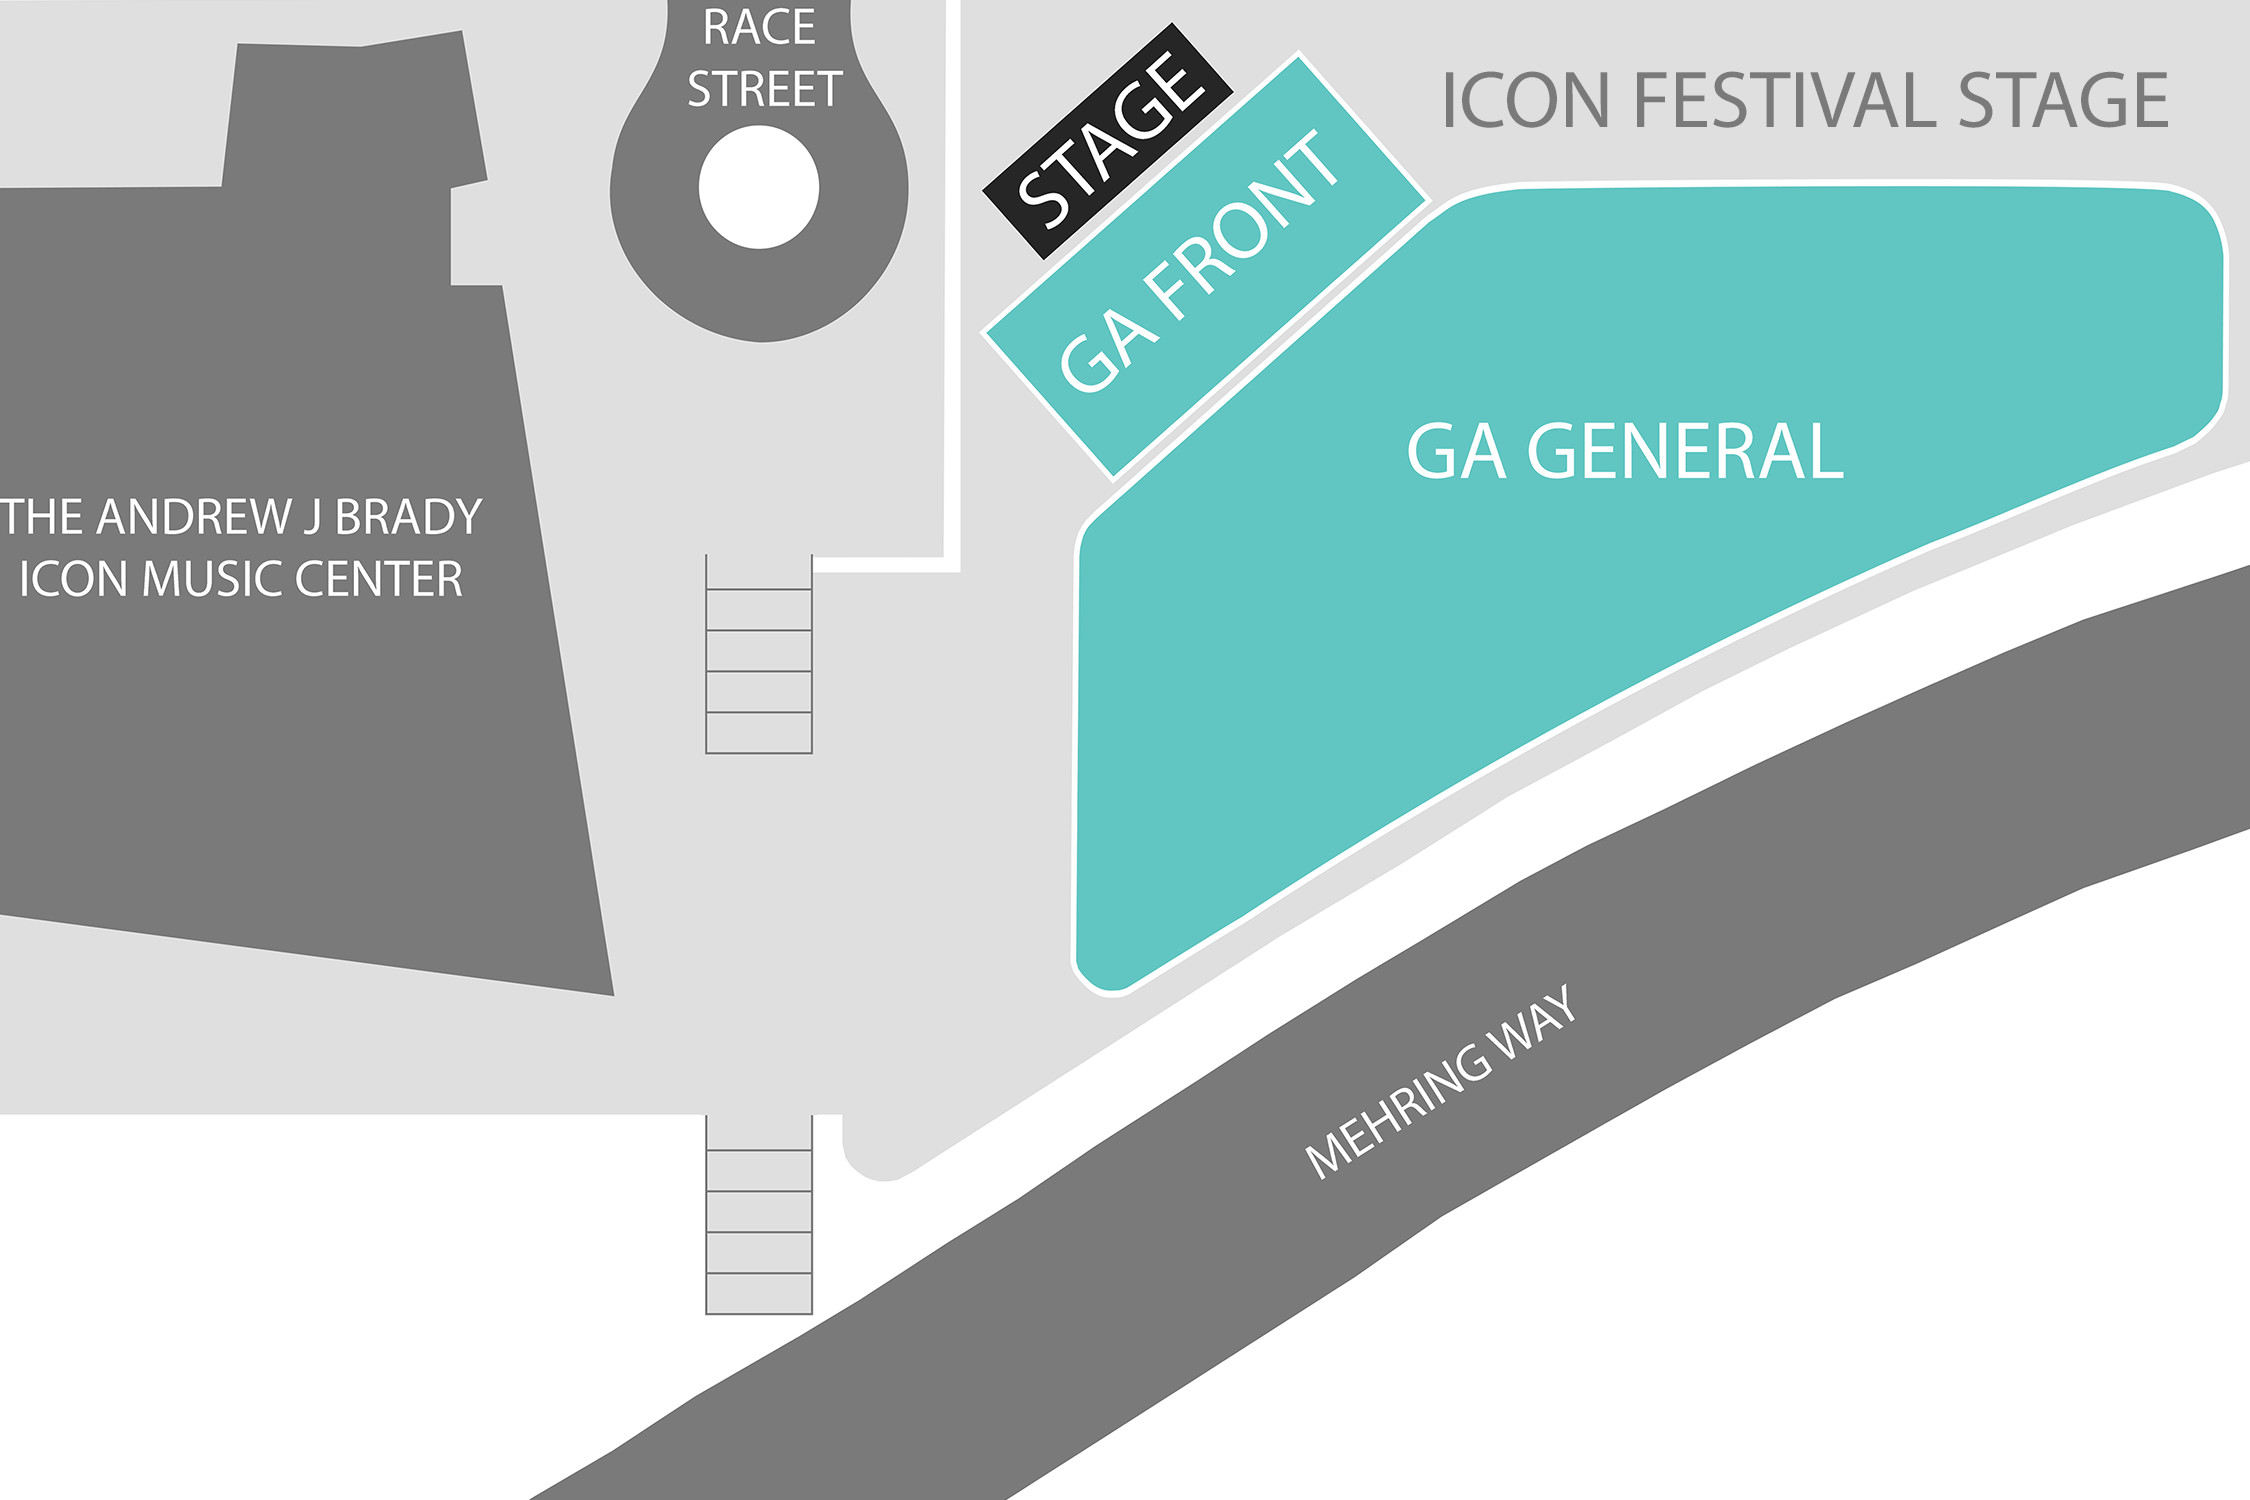 ICON Outdoor Stage - General Admission Front